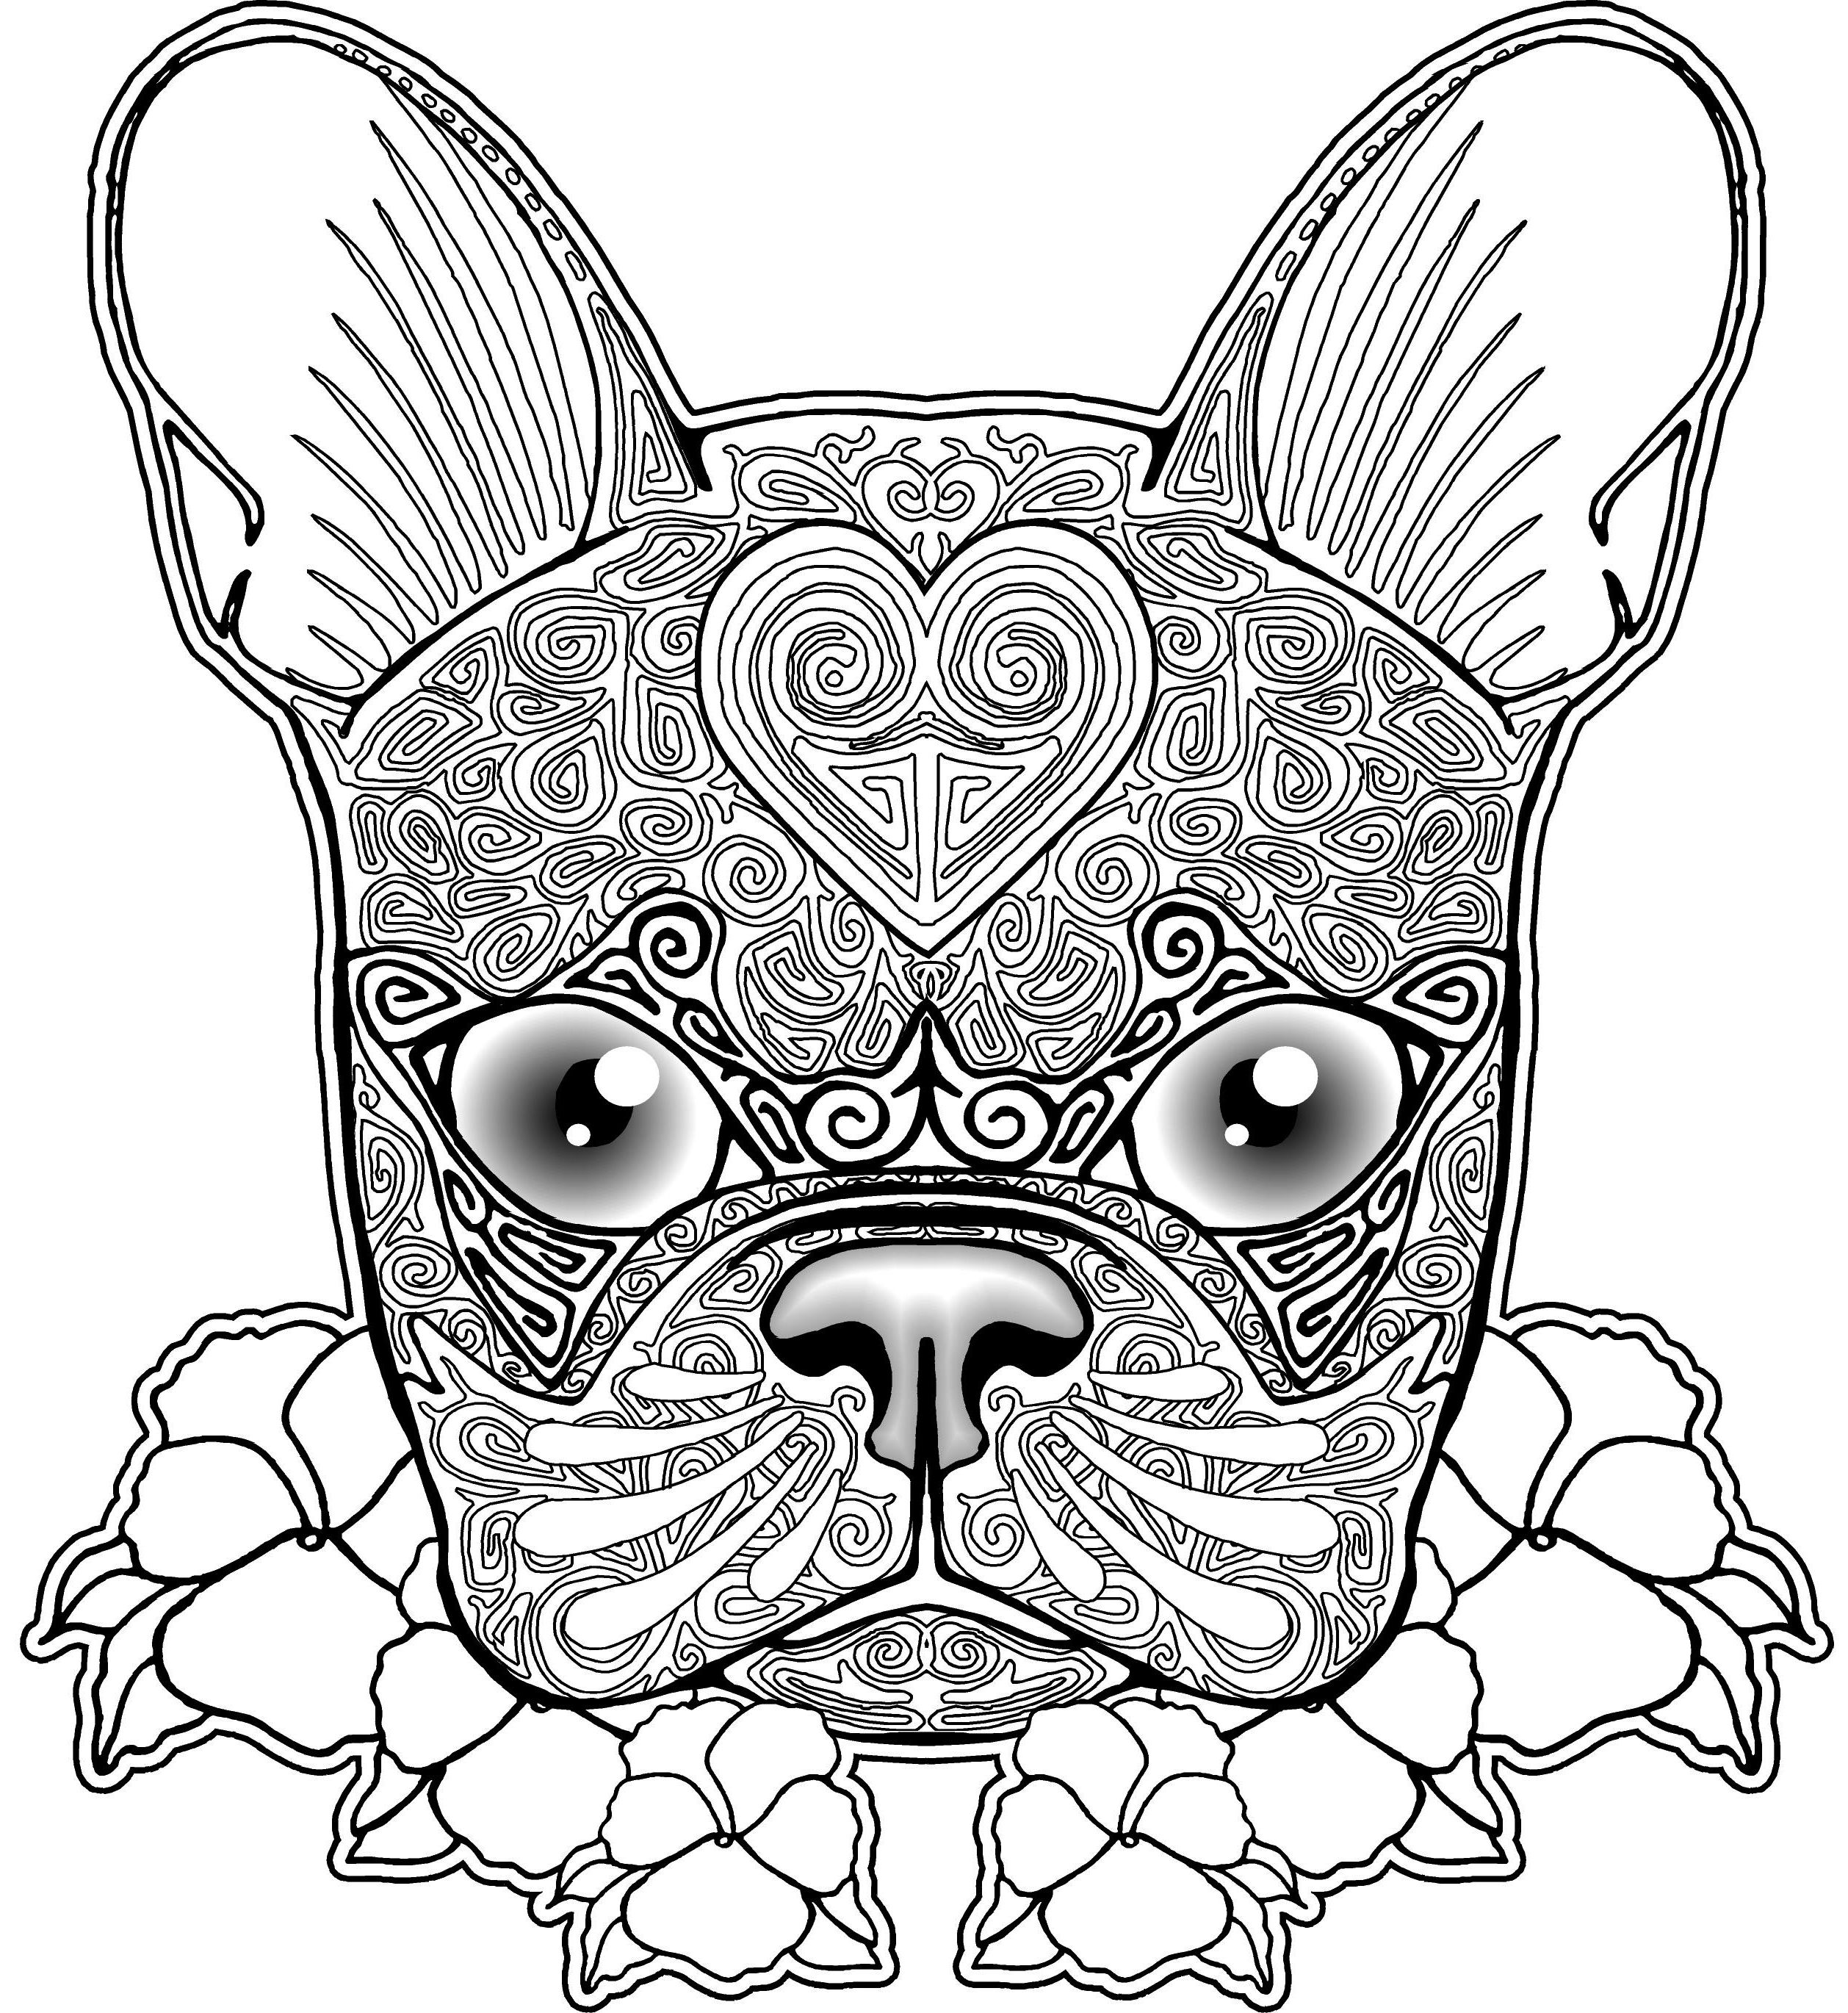 dog colouring in pug coloring pages to download and print for free colouring dog in